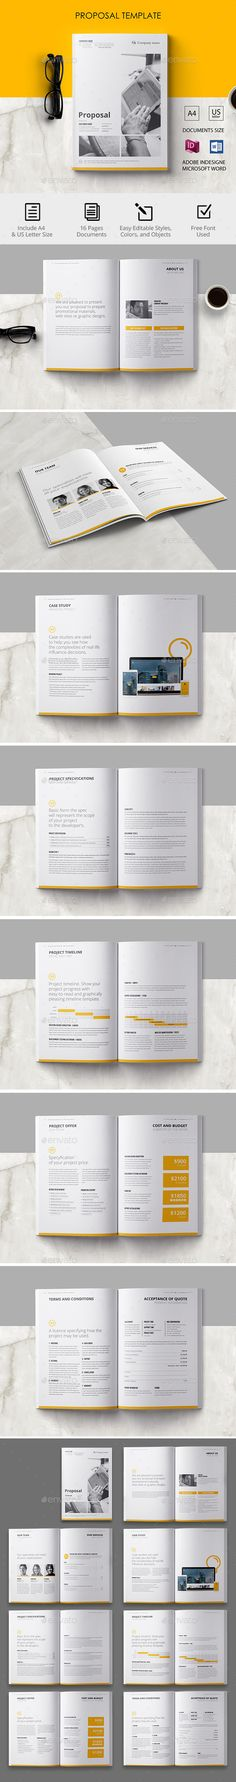 Prosposal — InDesign INDD #infographics • Download ➝ https://graphicriver.net/item/prosposal/19619342?ref=pxcr